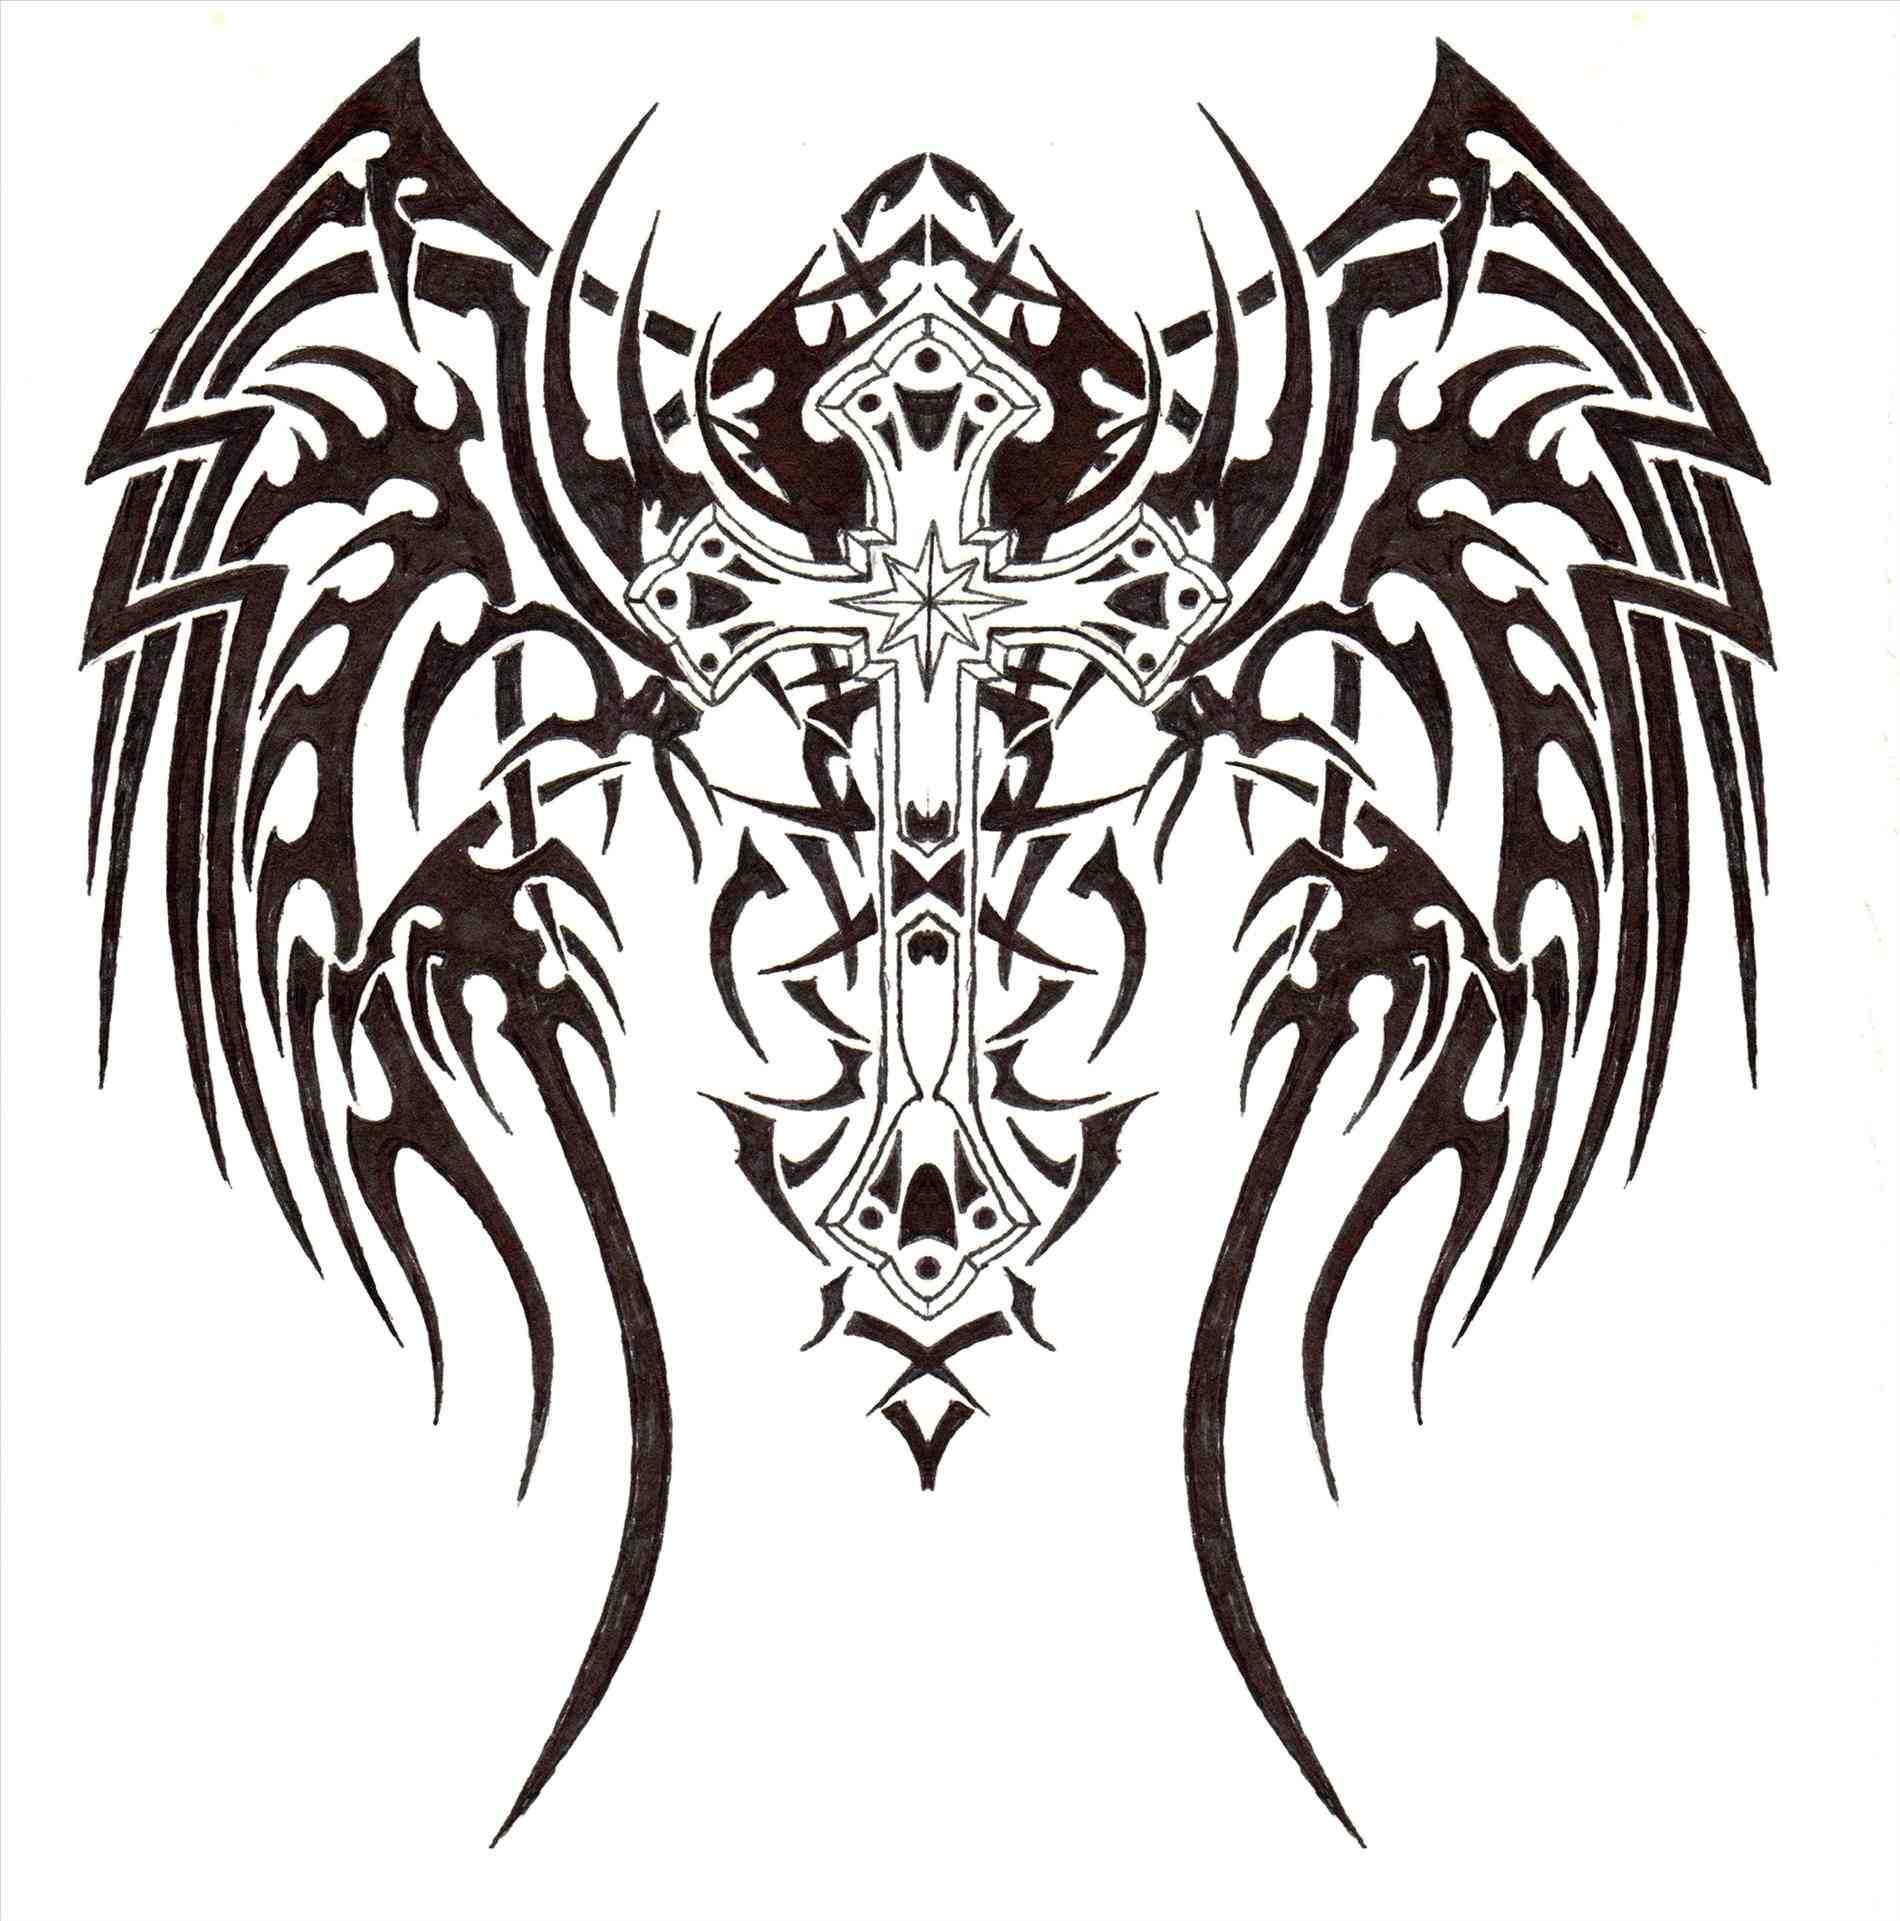 1900x1921 Cool Easy Drawings Of Crosses With Wings